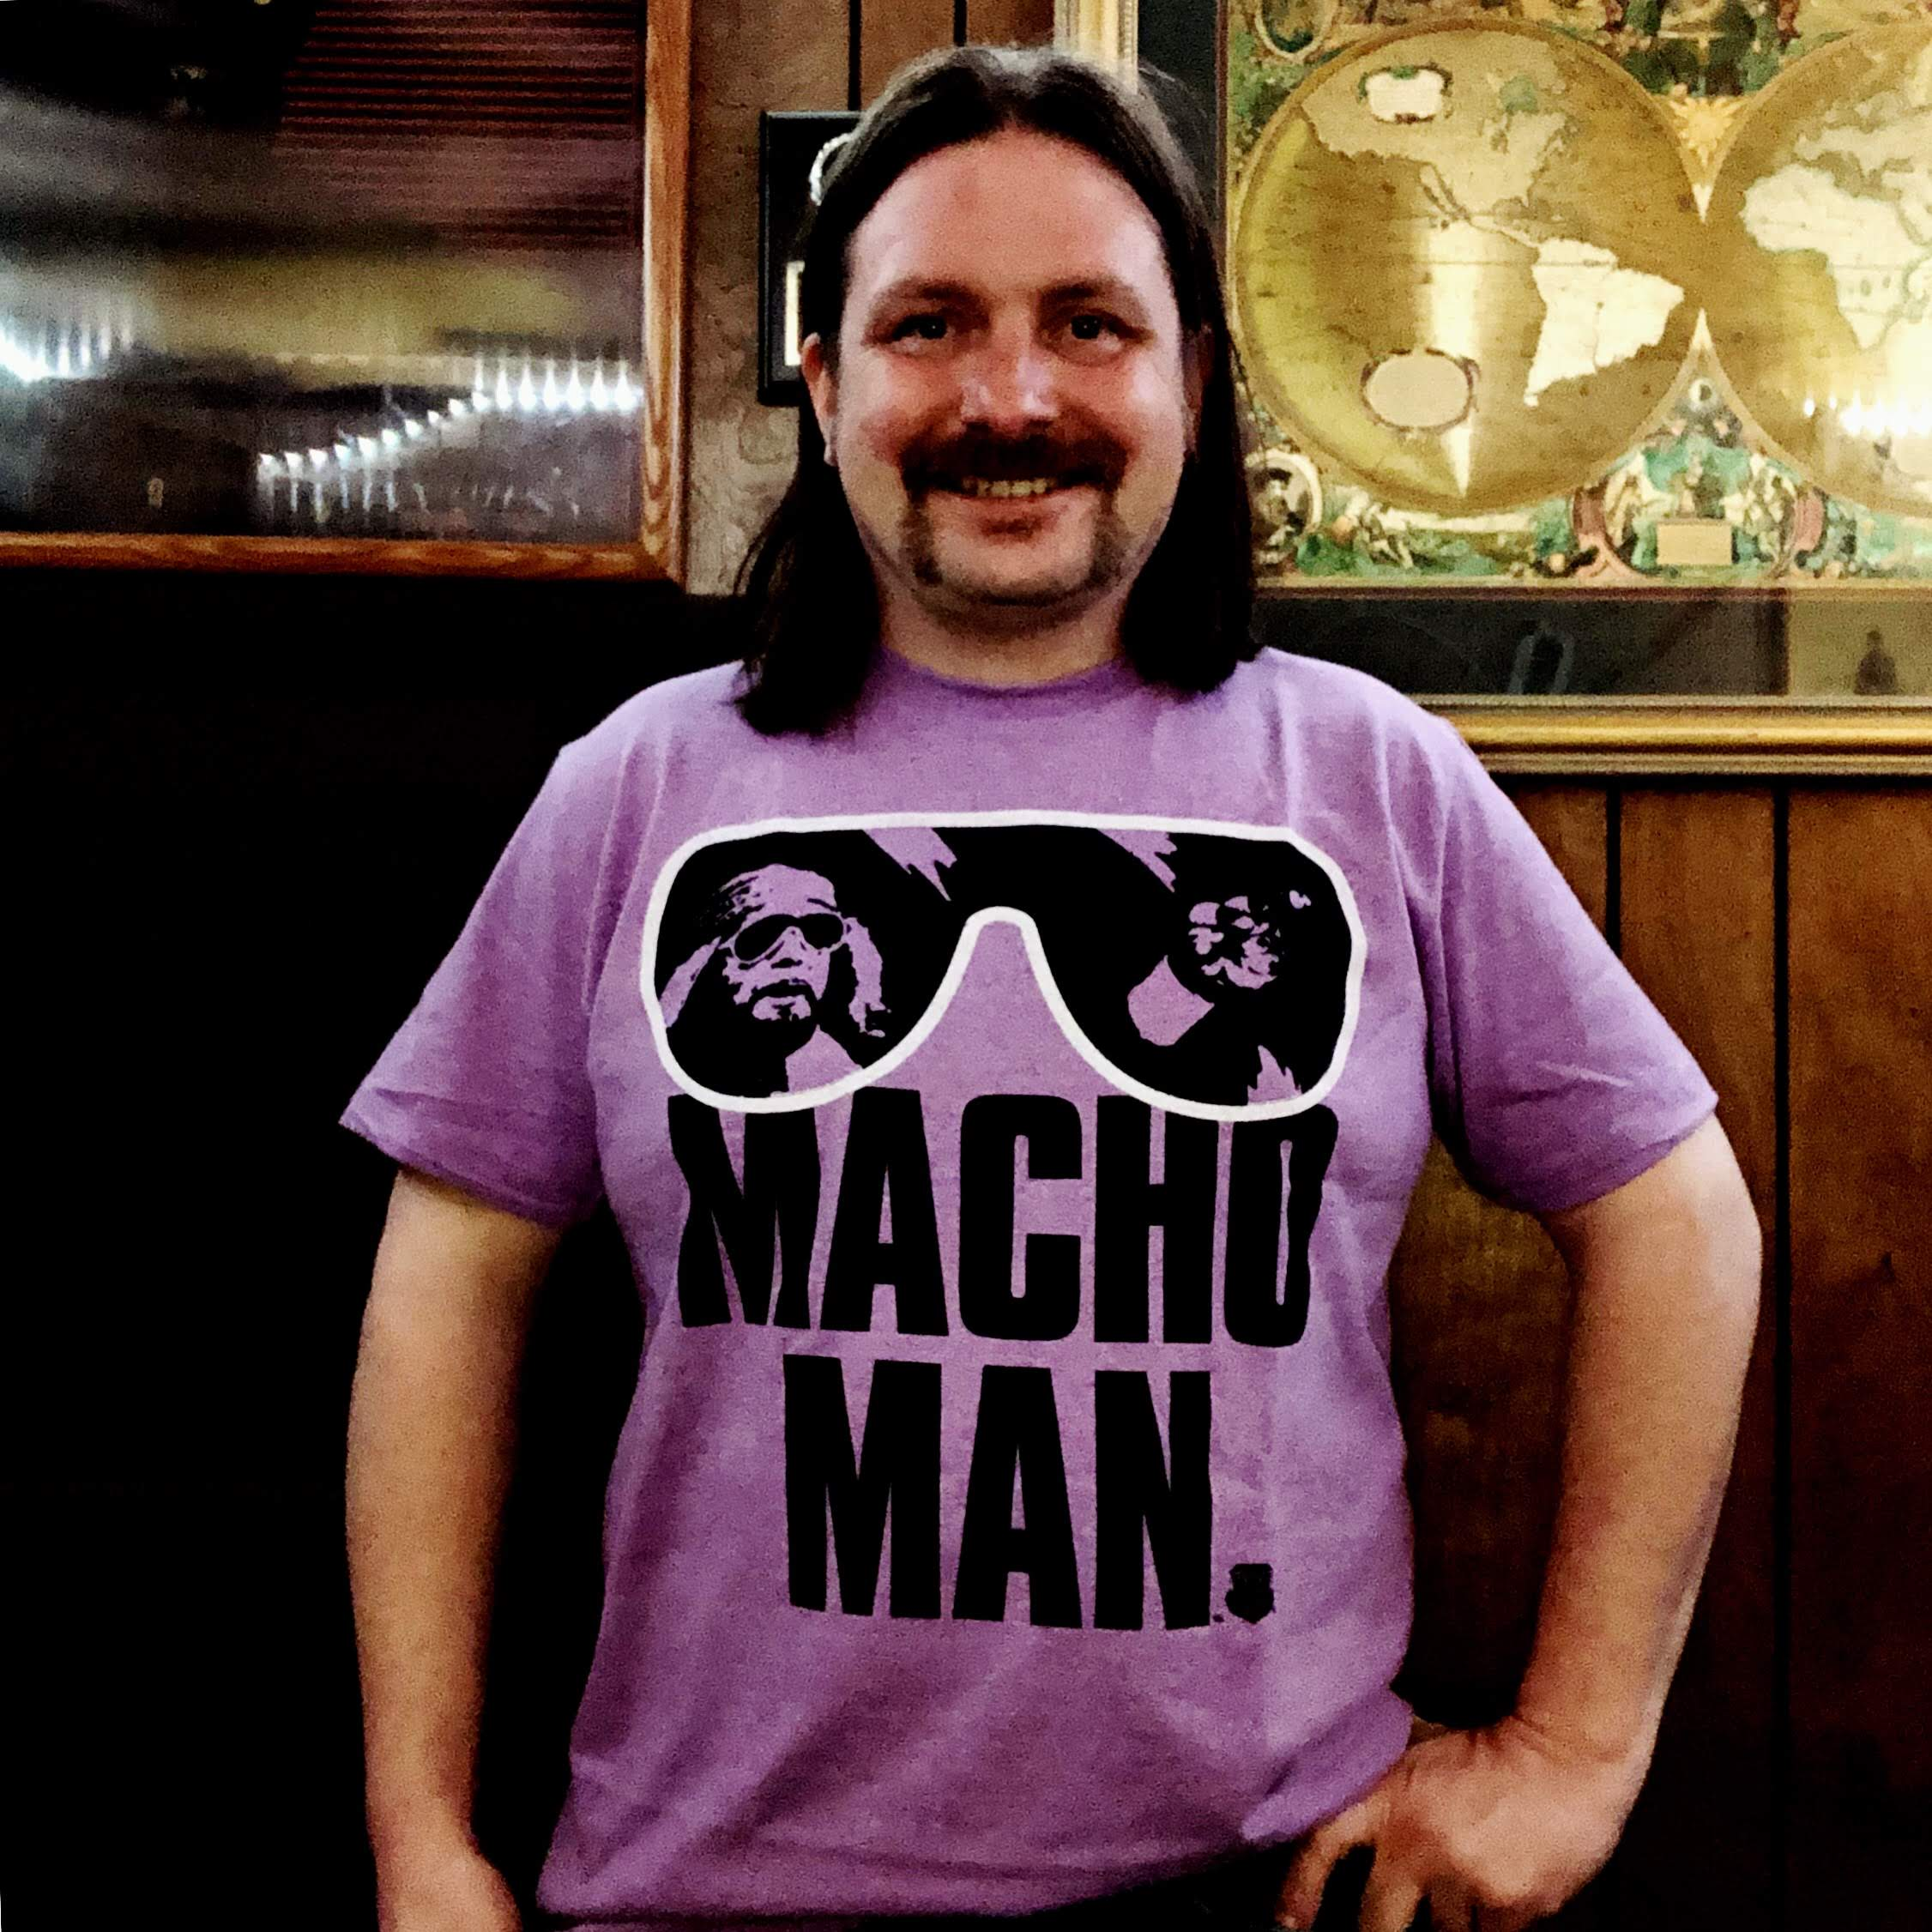 Photo of me wearing my Macho Man t-shirt this spring.